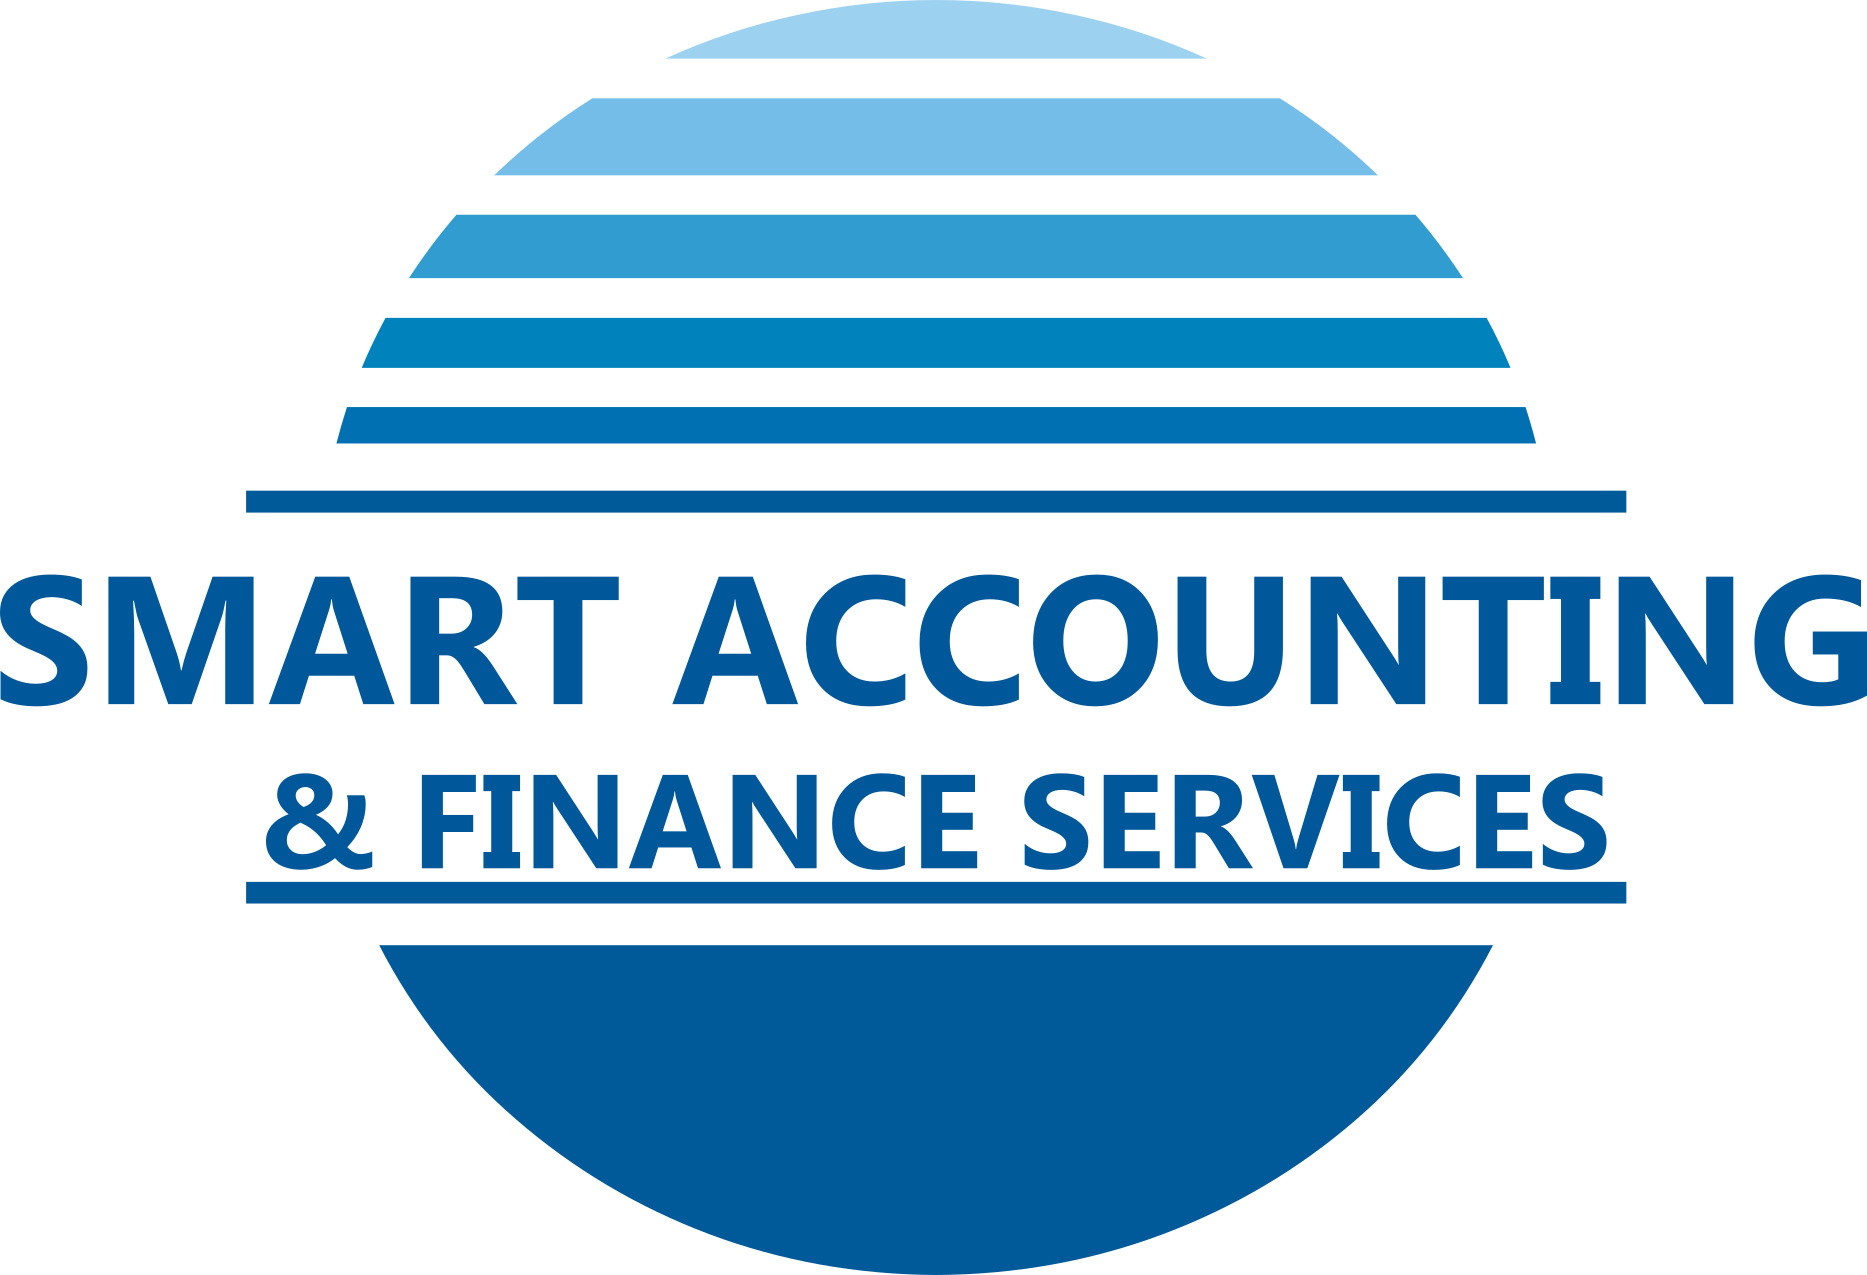 Smart Accounting & Finance Services